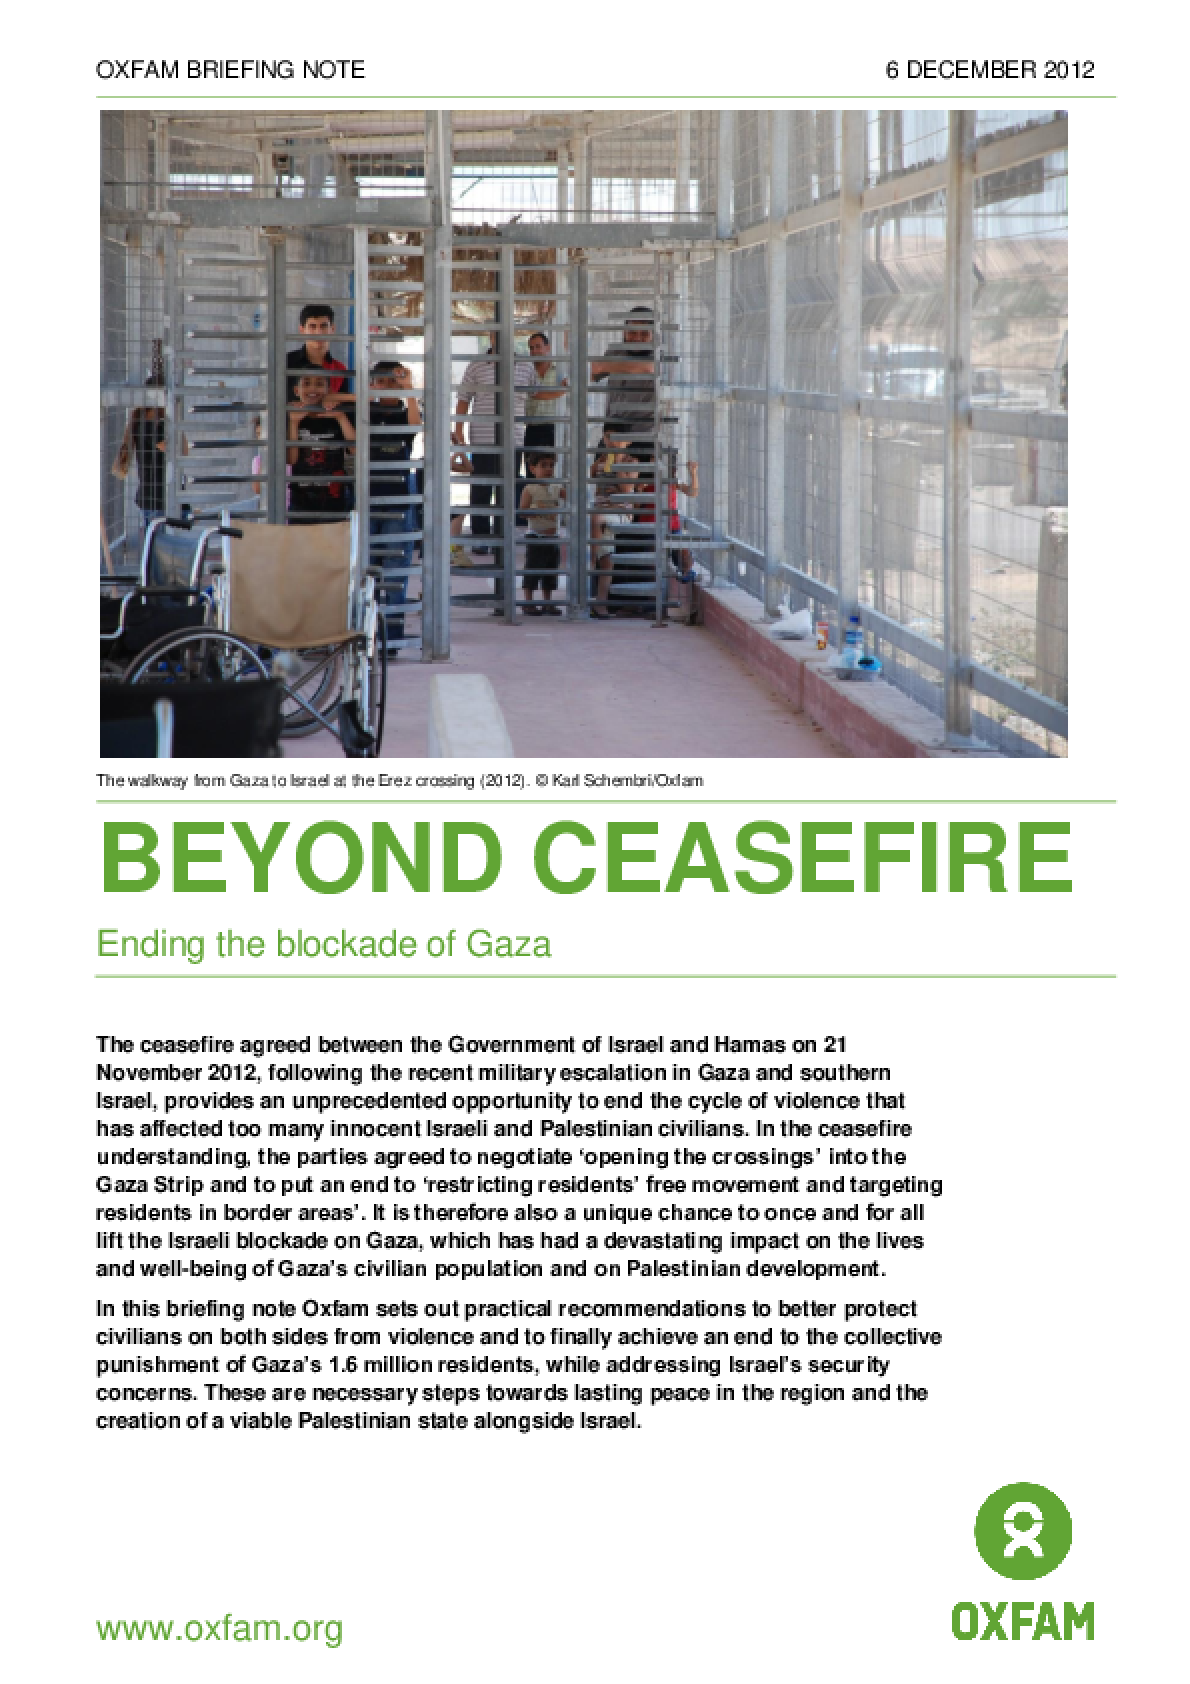 Beyond Ceasefire: Ending the blockade of Gaza